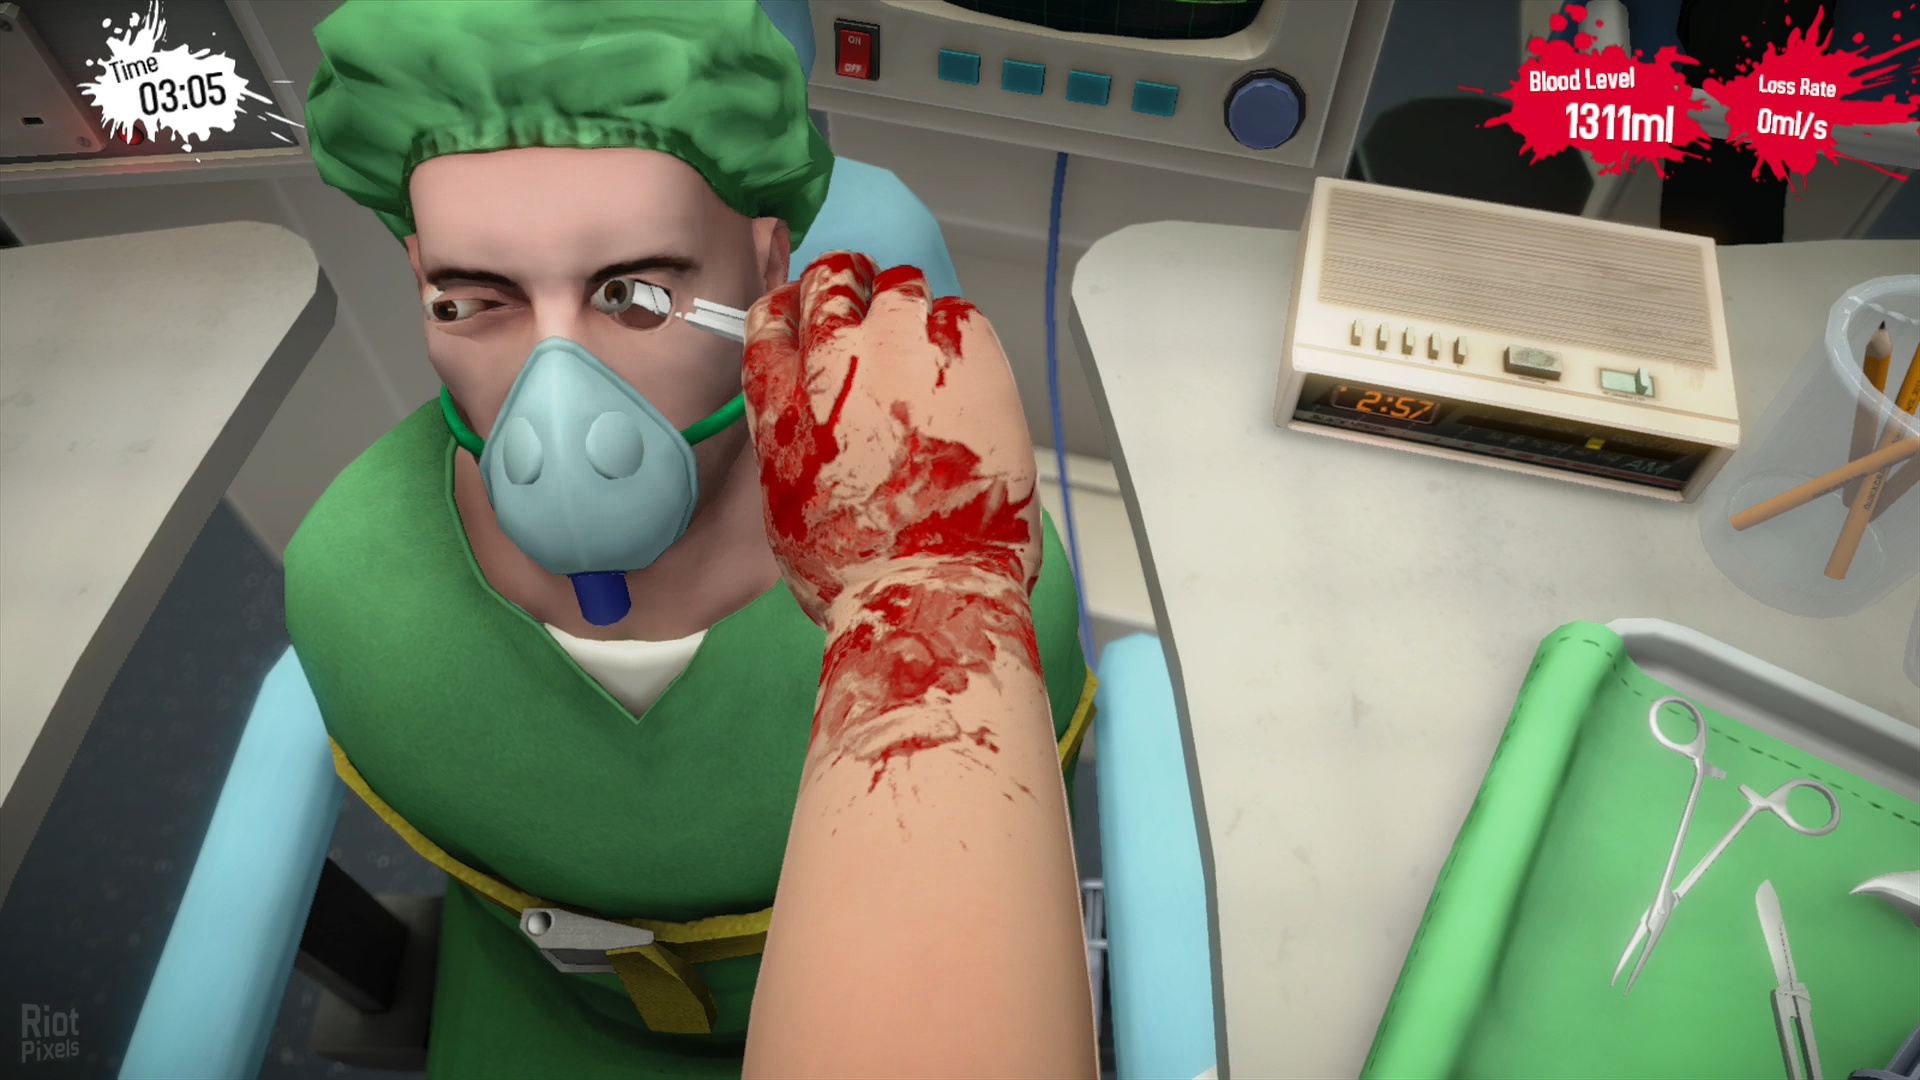 surgeon simulator скачать